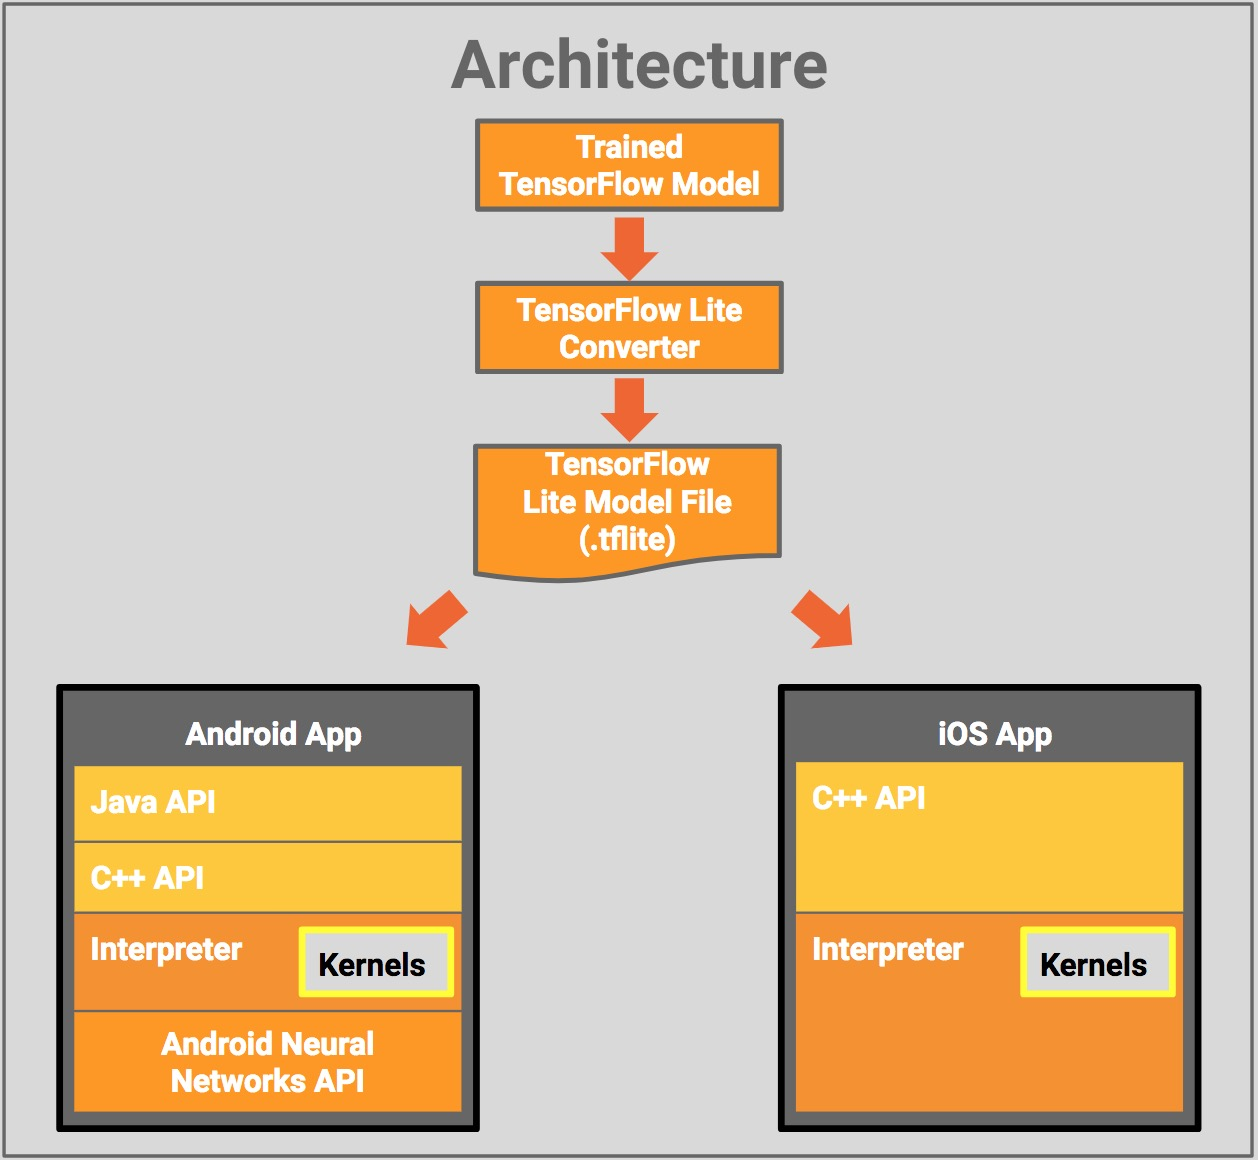 Machine Learning and Mobile: Deploying Models on The Edge